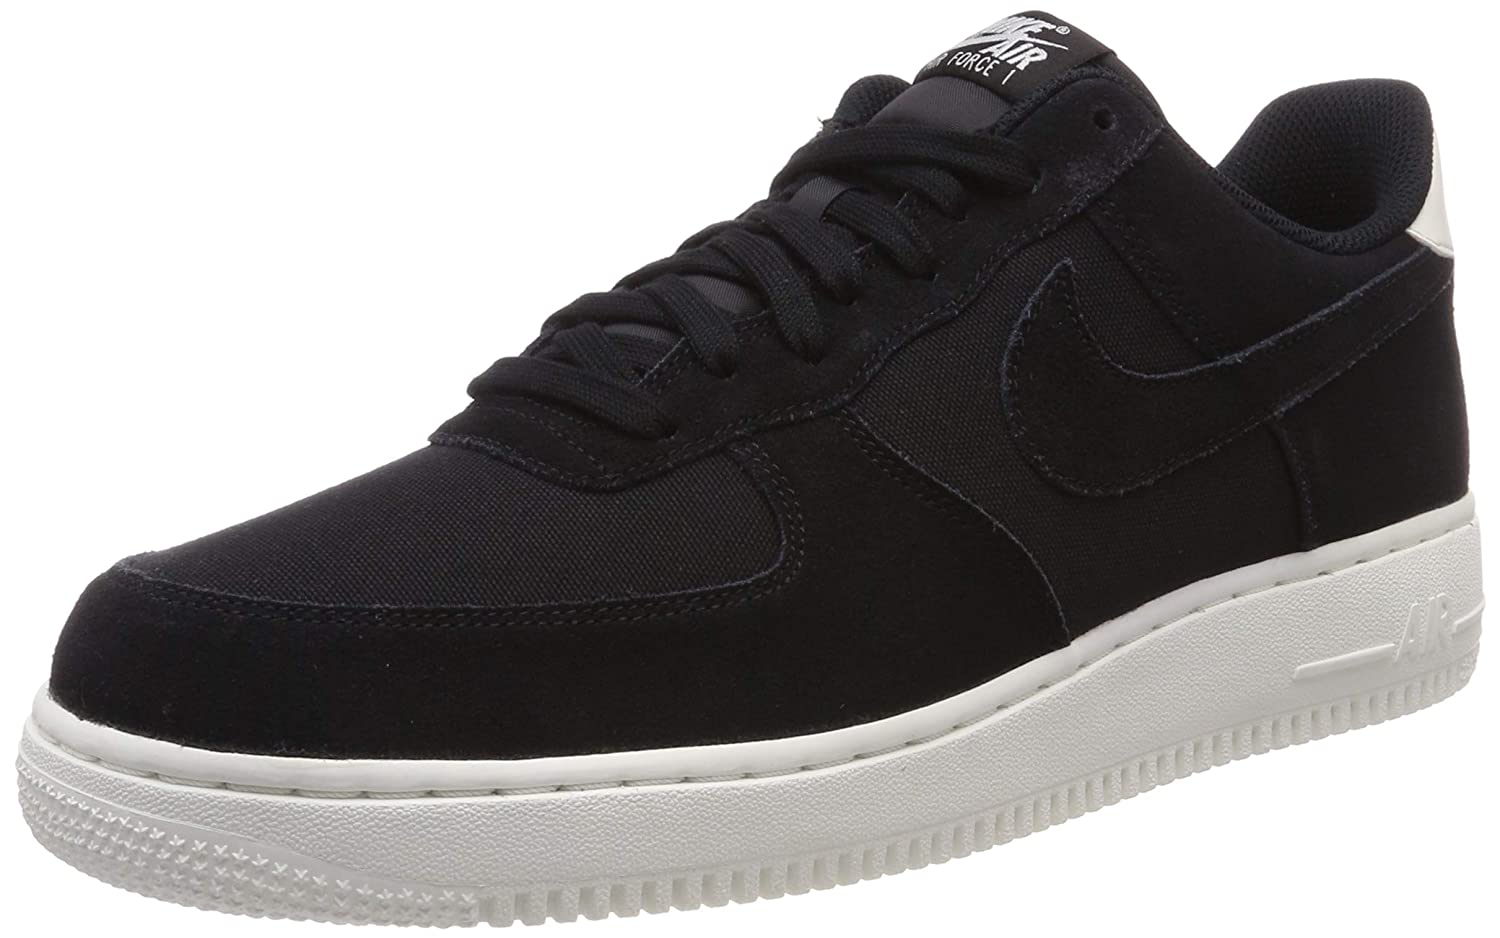 timeless design 6faca 75c20 Amazon.com   Nike Air Force 1  07 Suede   Basketball